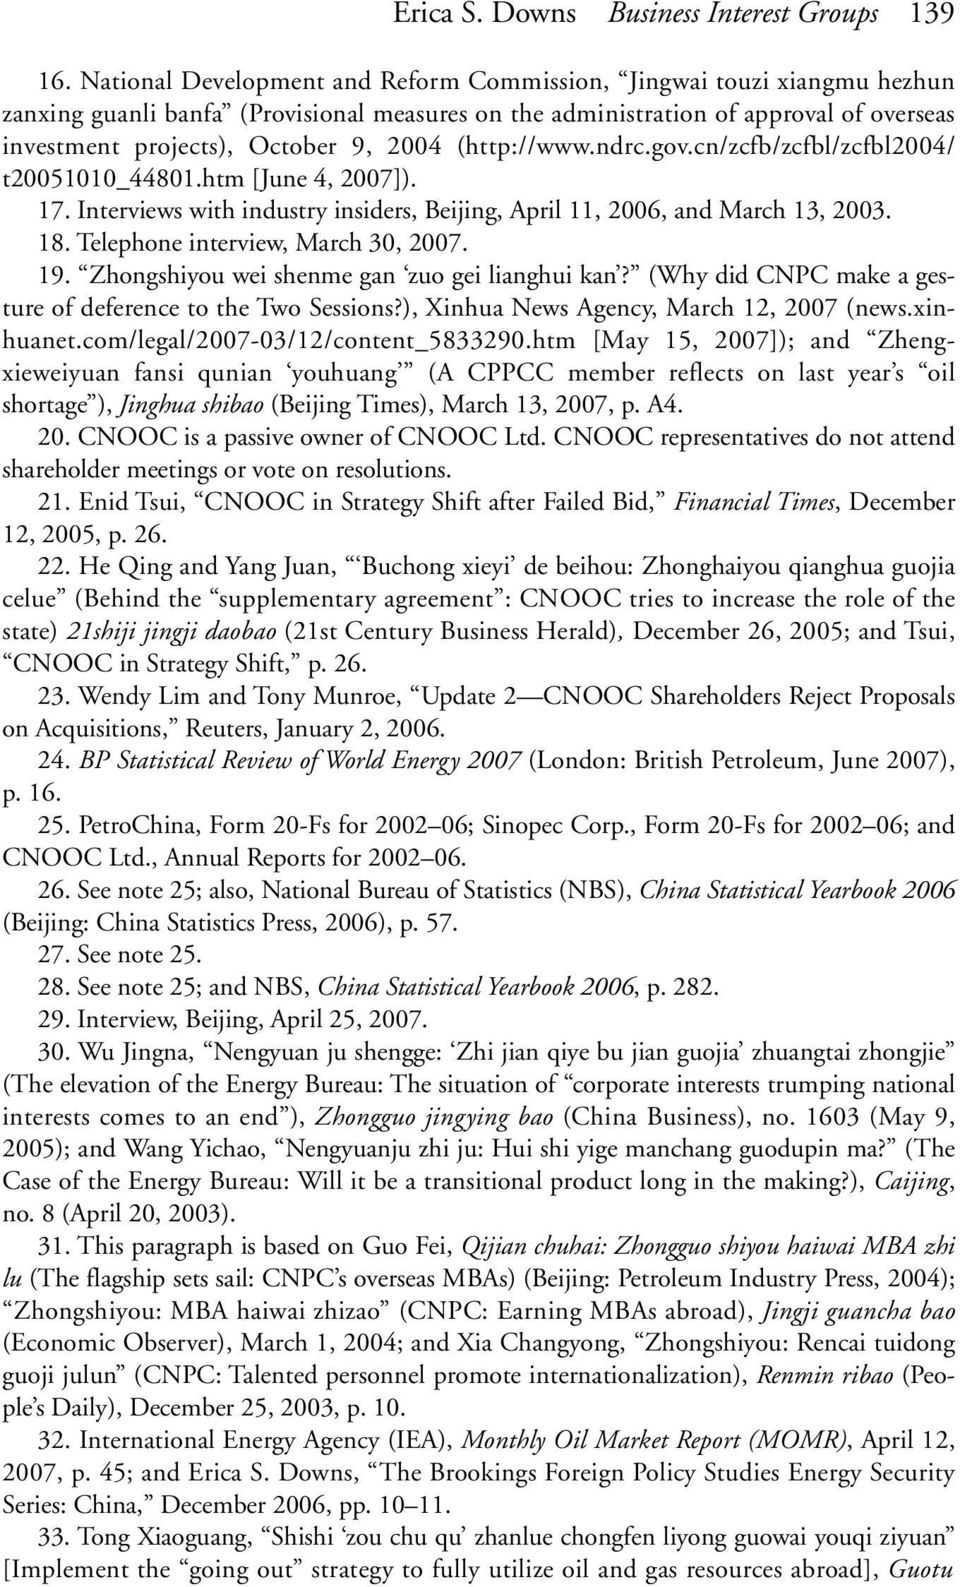 (http://www.ndrc.gov.cn/zcfb/zcfbl/zcfbl2004/ t20051010_44801.htm [June 4, 2007]). 17. Interviews with industry insiders, Beijing, April 11, 2006, and March 13, 2003. 18.